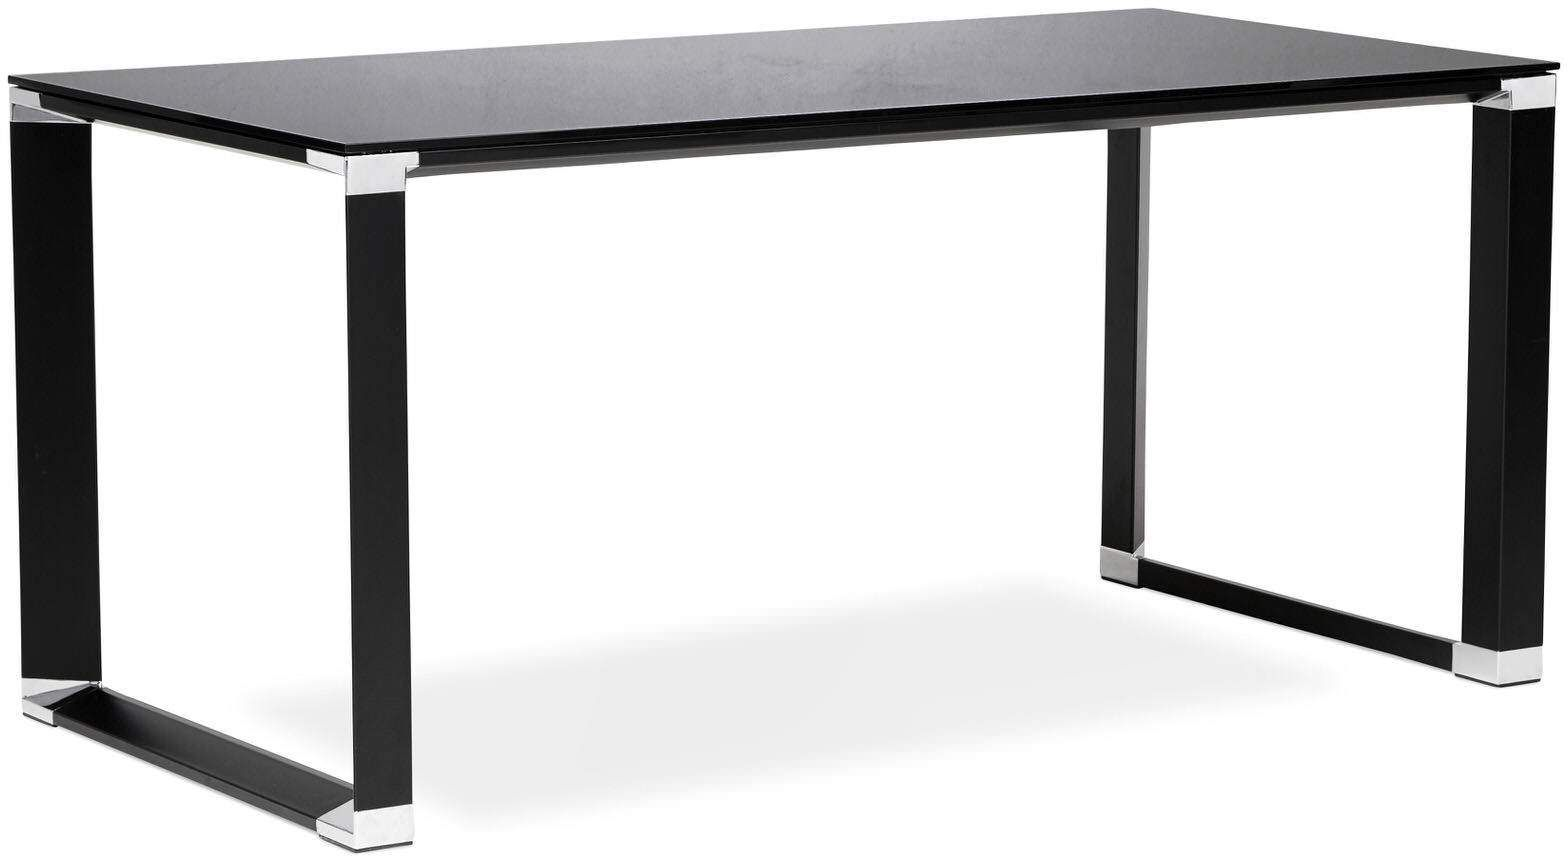 Bureau Verre Noir Bureau Design Warner Kokoon Design à 540 61 Chez Recollection